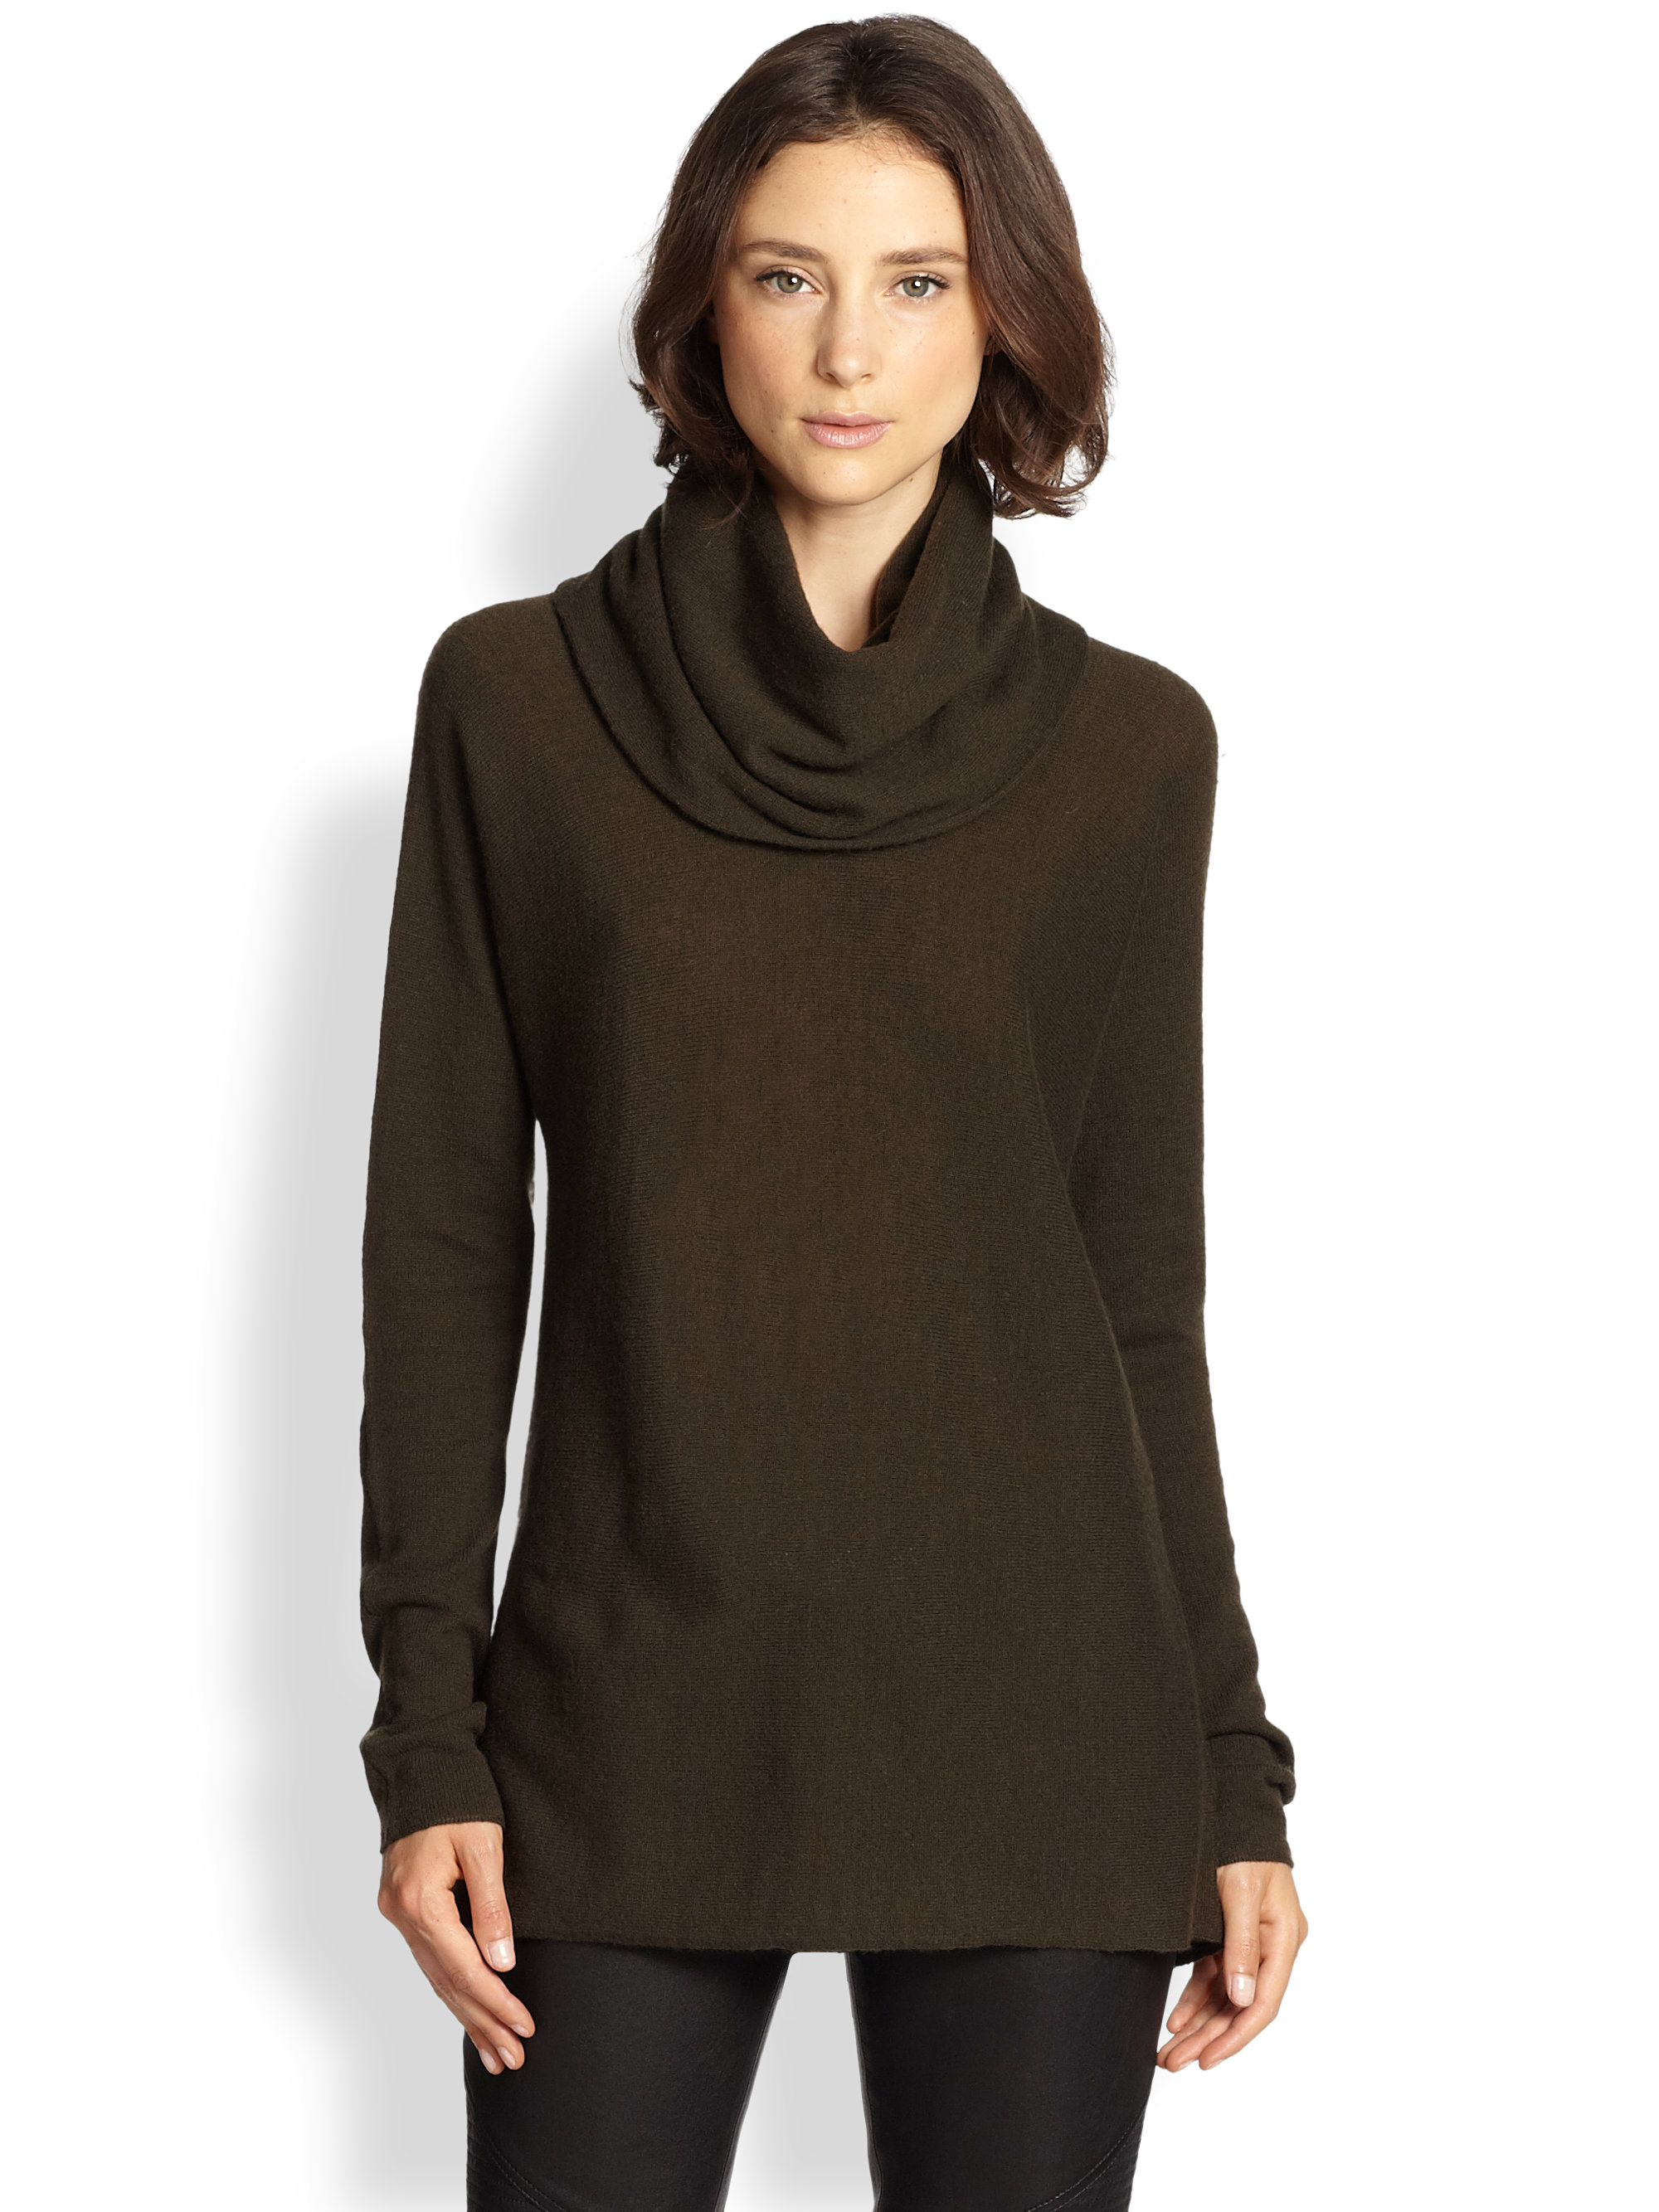 Vince Cashmere Cowlneck Sweater in Natural | Lyst